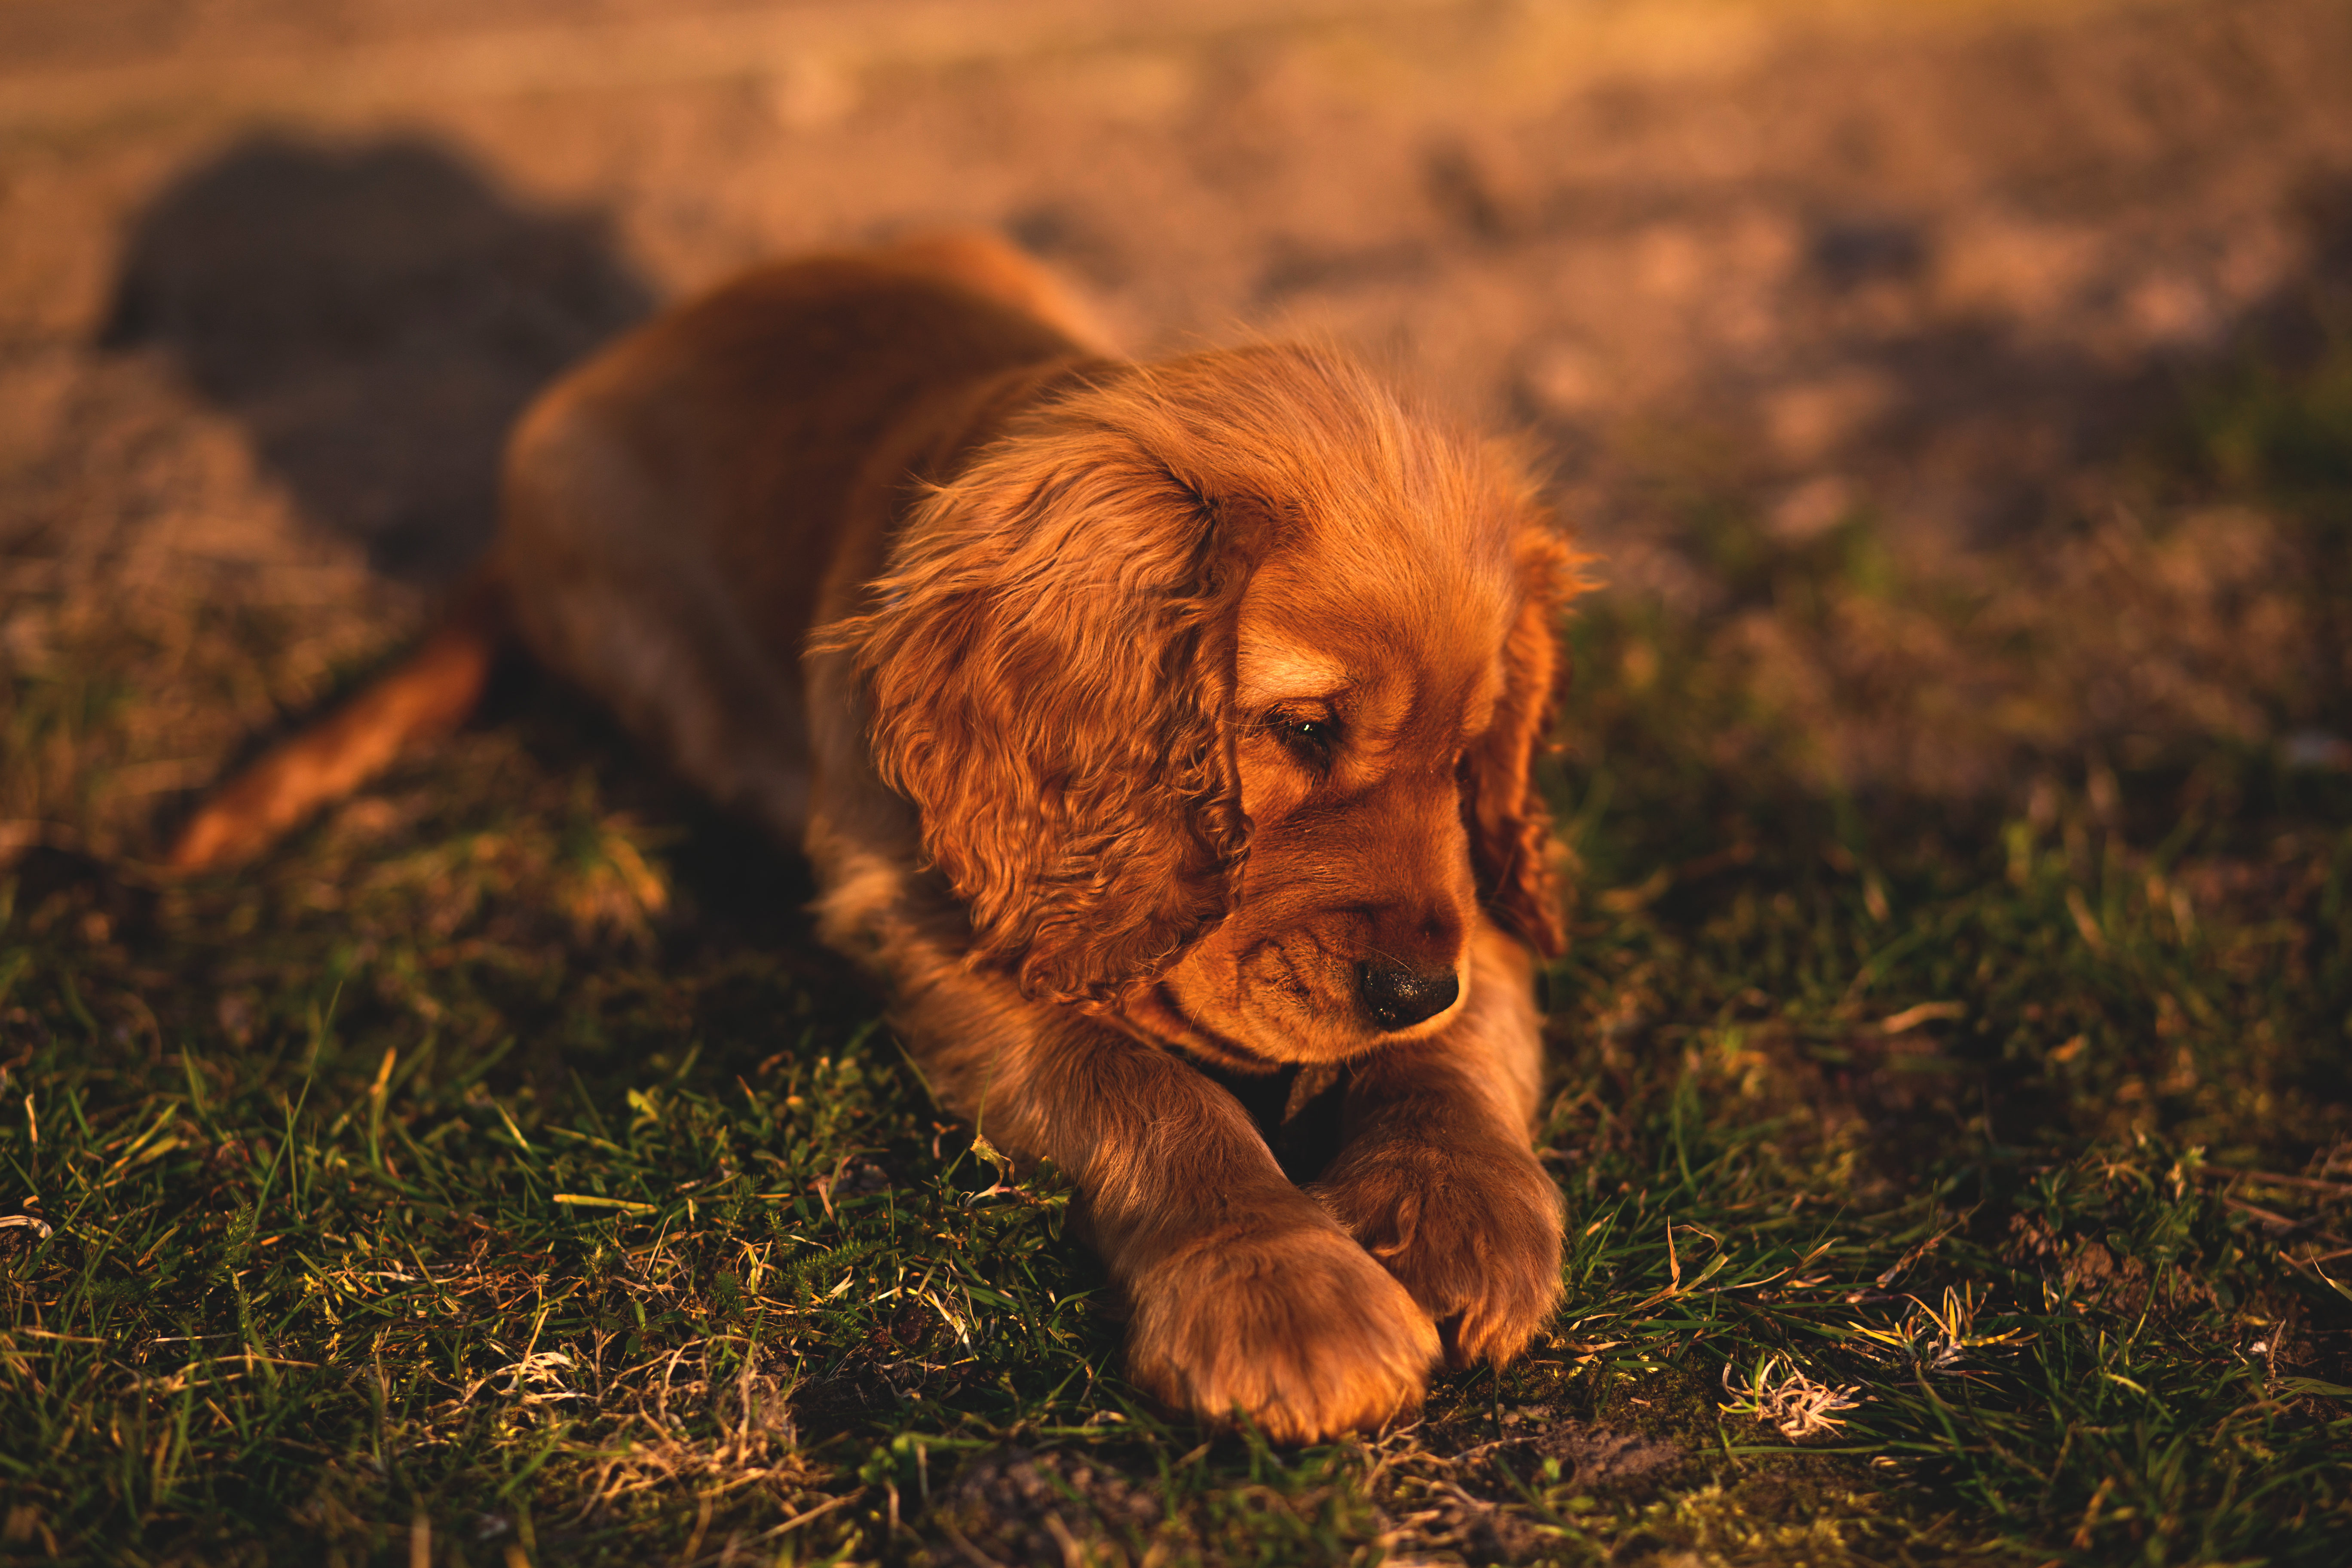 150359 download wallpaper Animals, English Cocker Spaniel, Puppy, Dog, Lies, Grass screensavers and pictures for free